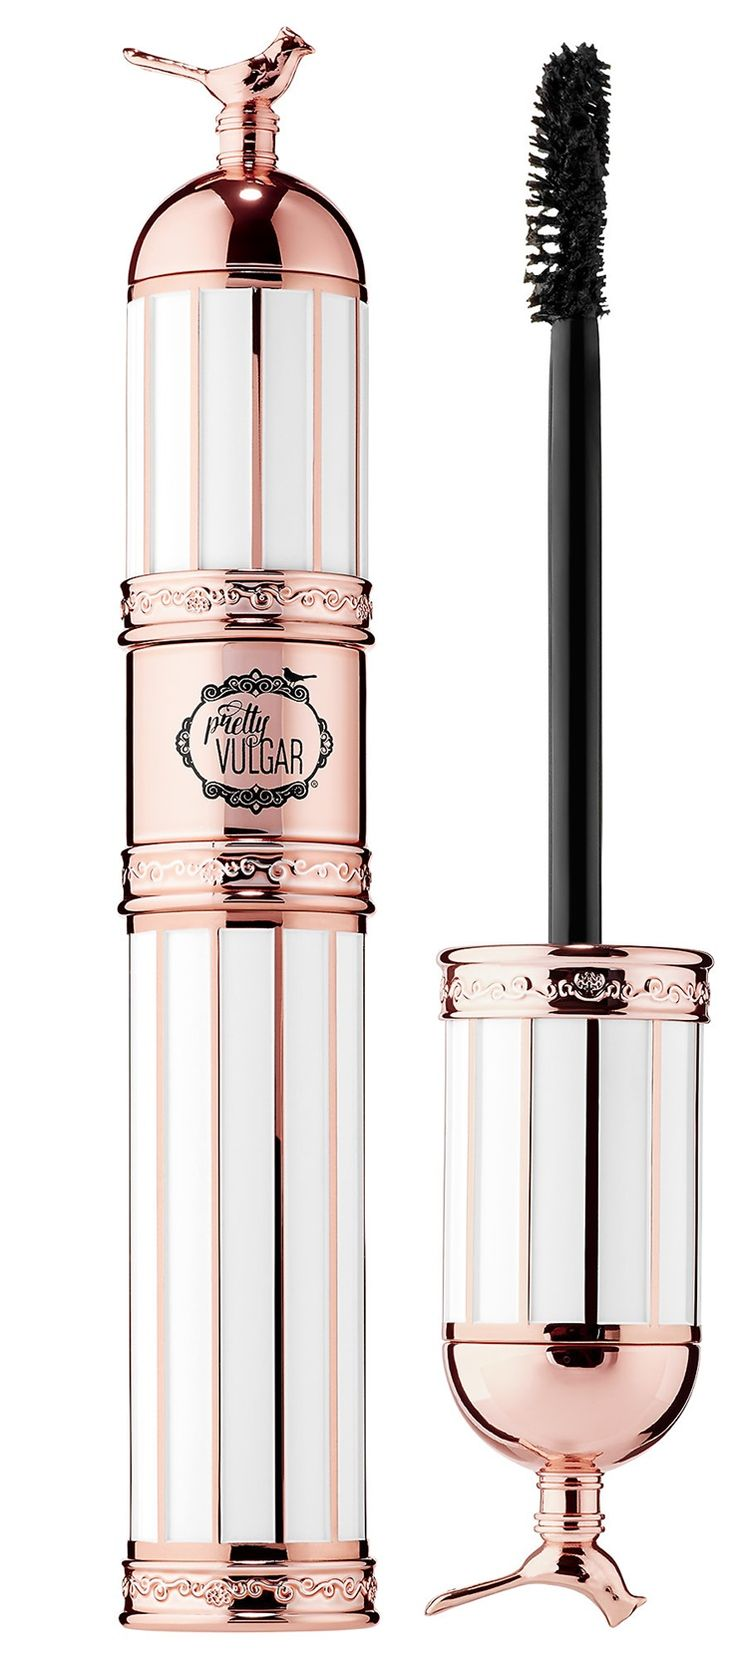 Pretty Vulgar Cosmetics The Feathers Mascara – Musings of a Muse